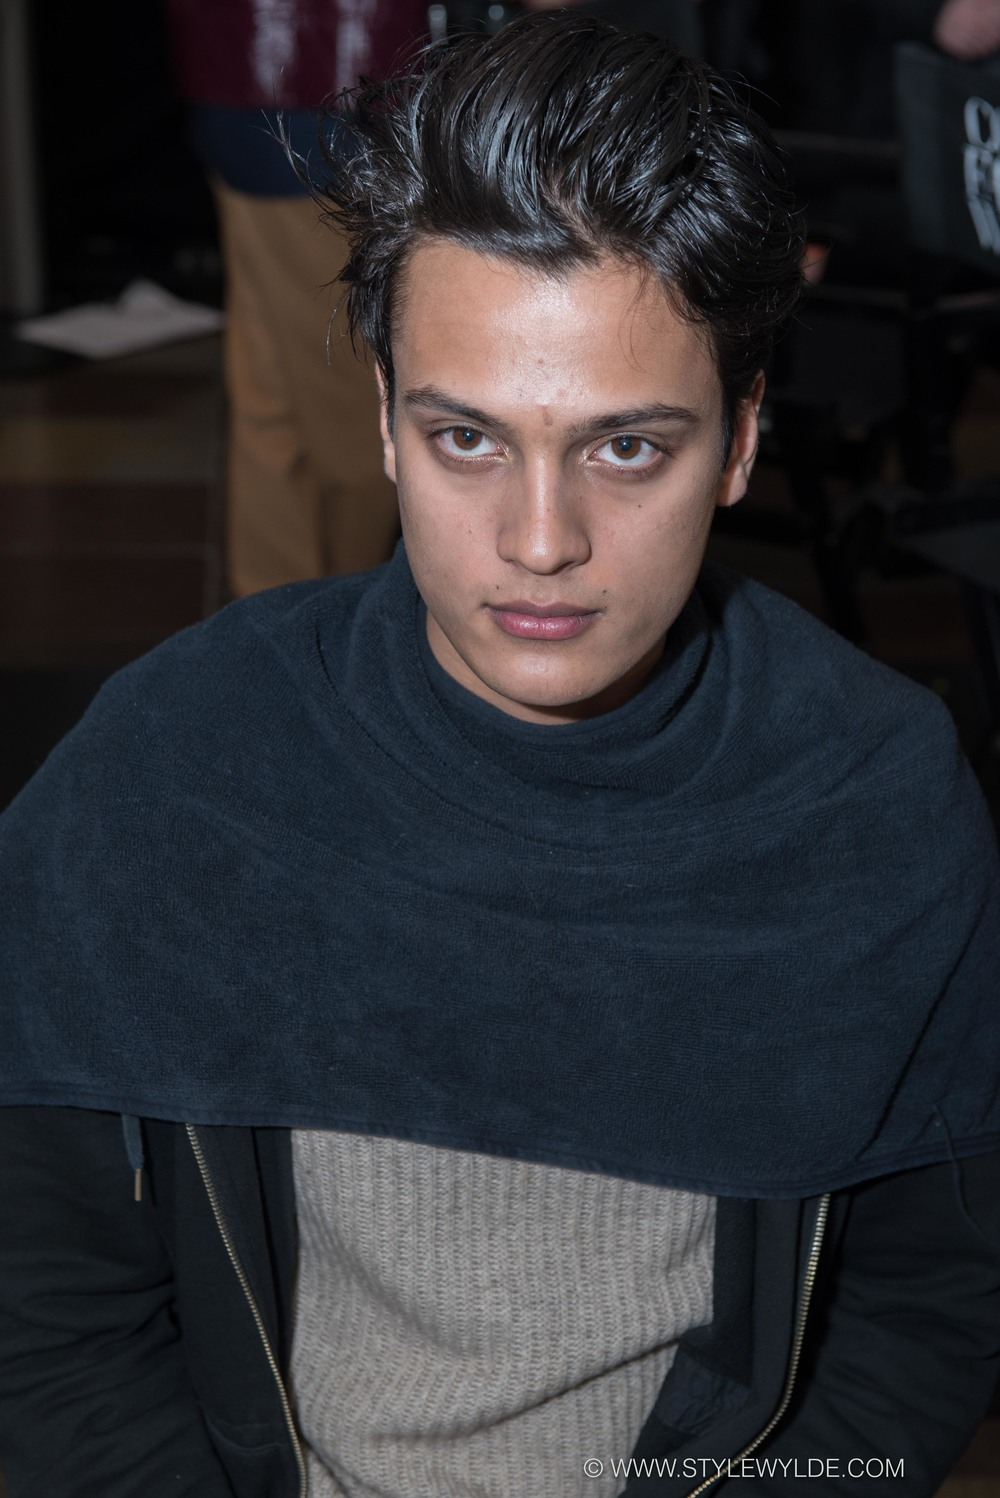 StyleWylde - Tonsure AW16 - Backstage-9.jpg